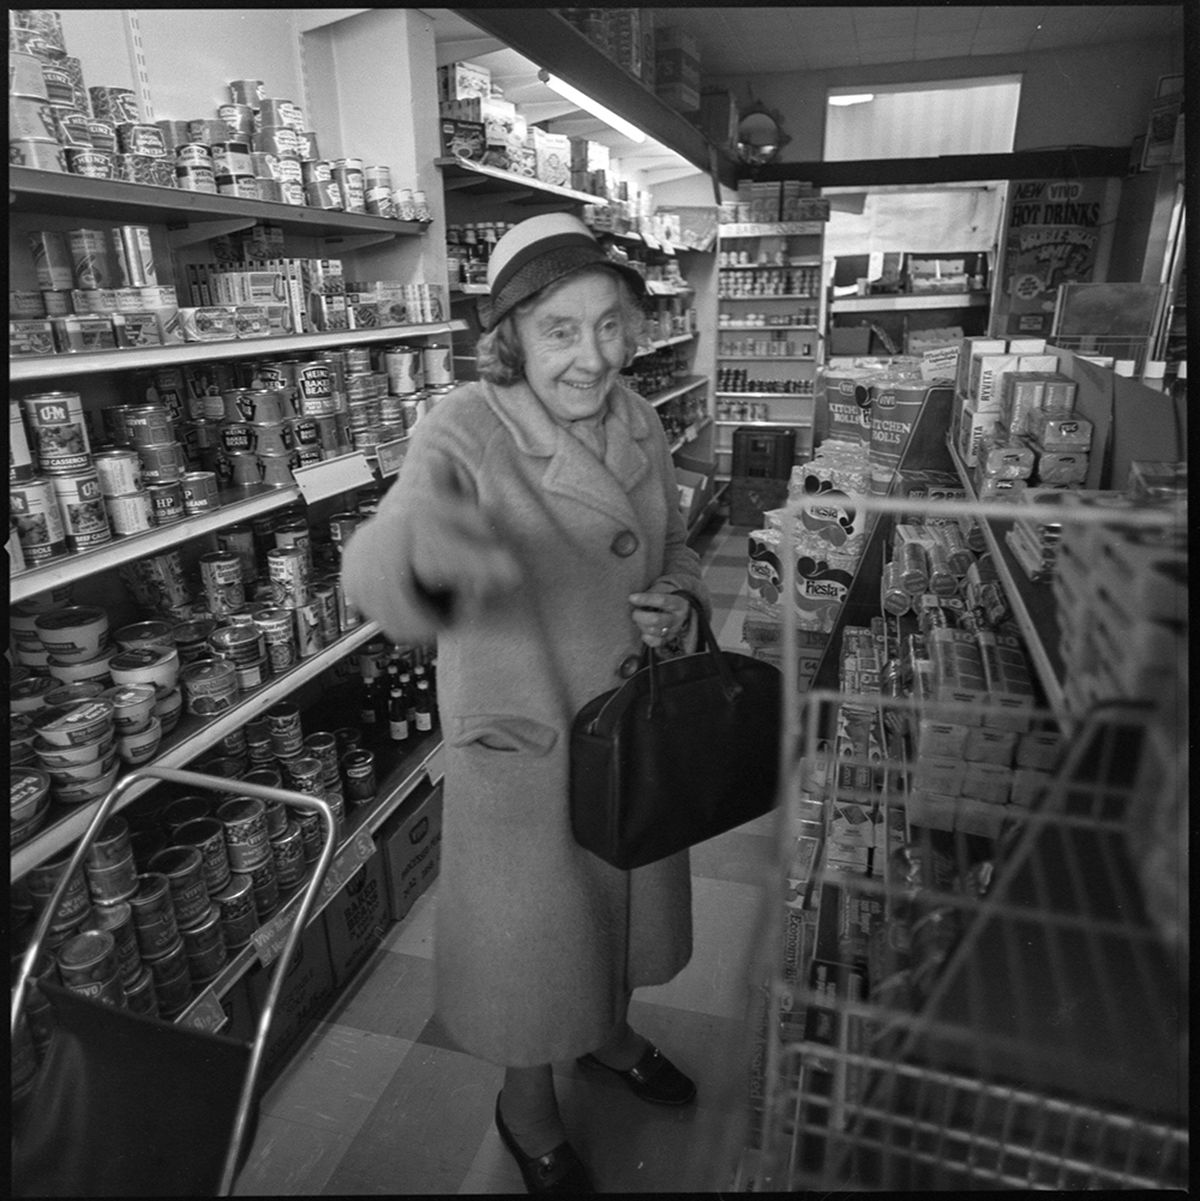 An elderly customer gets to grips with the new self-service supermarket